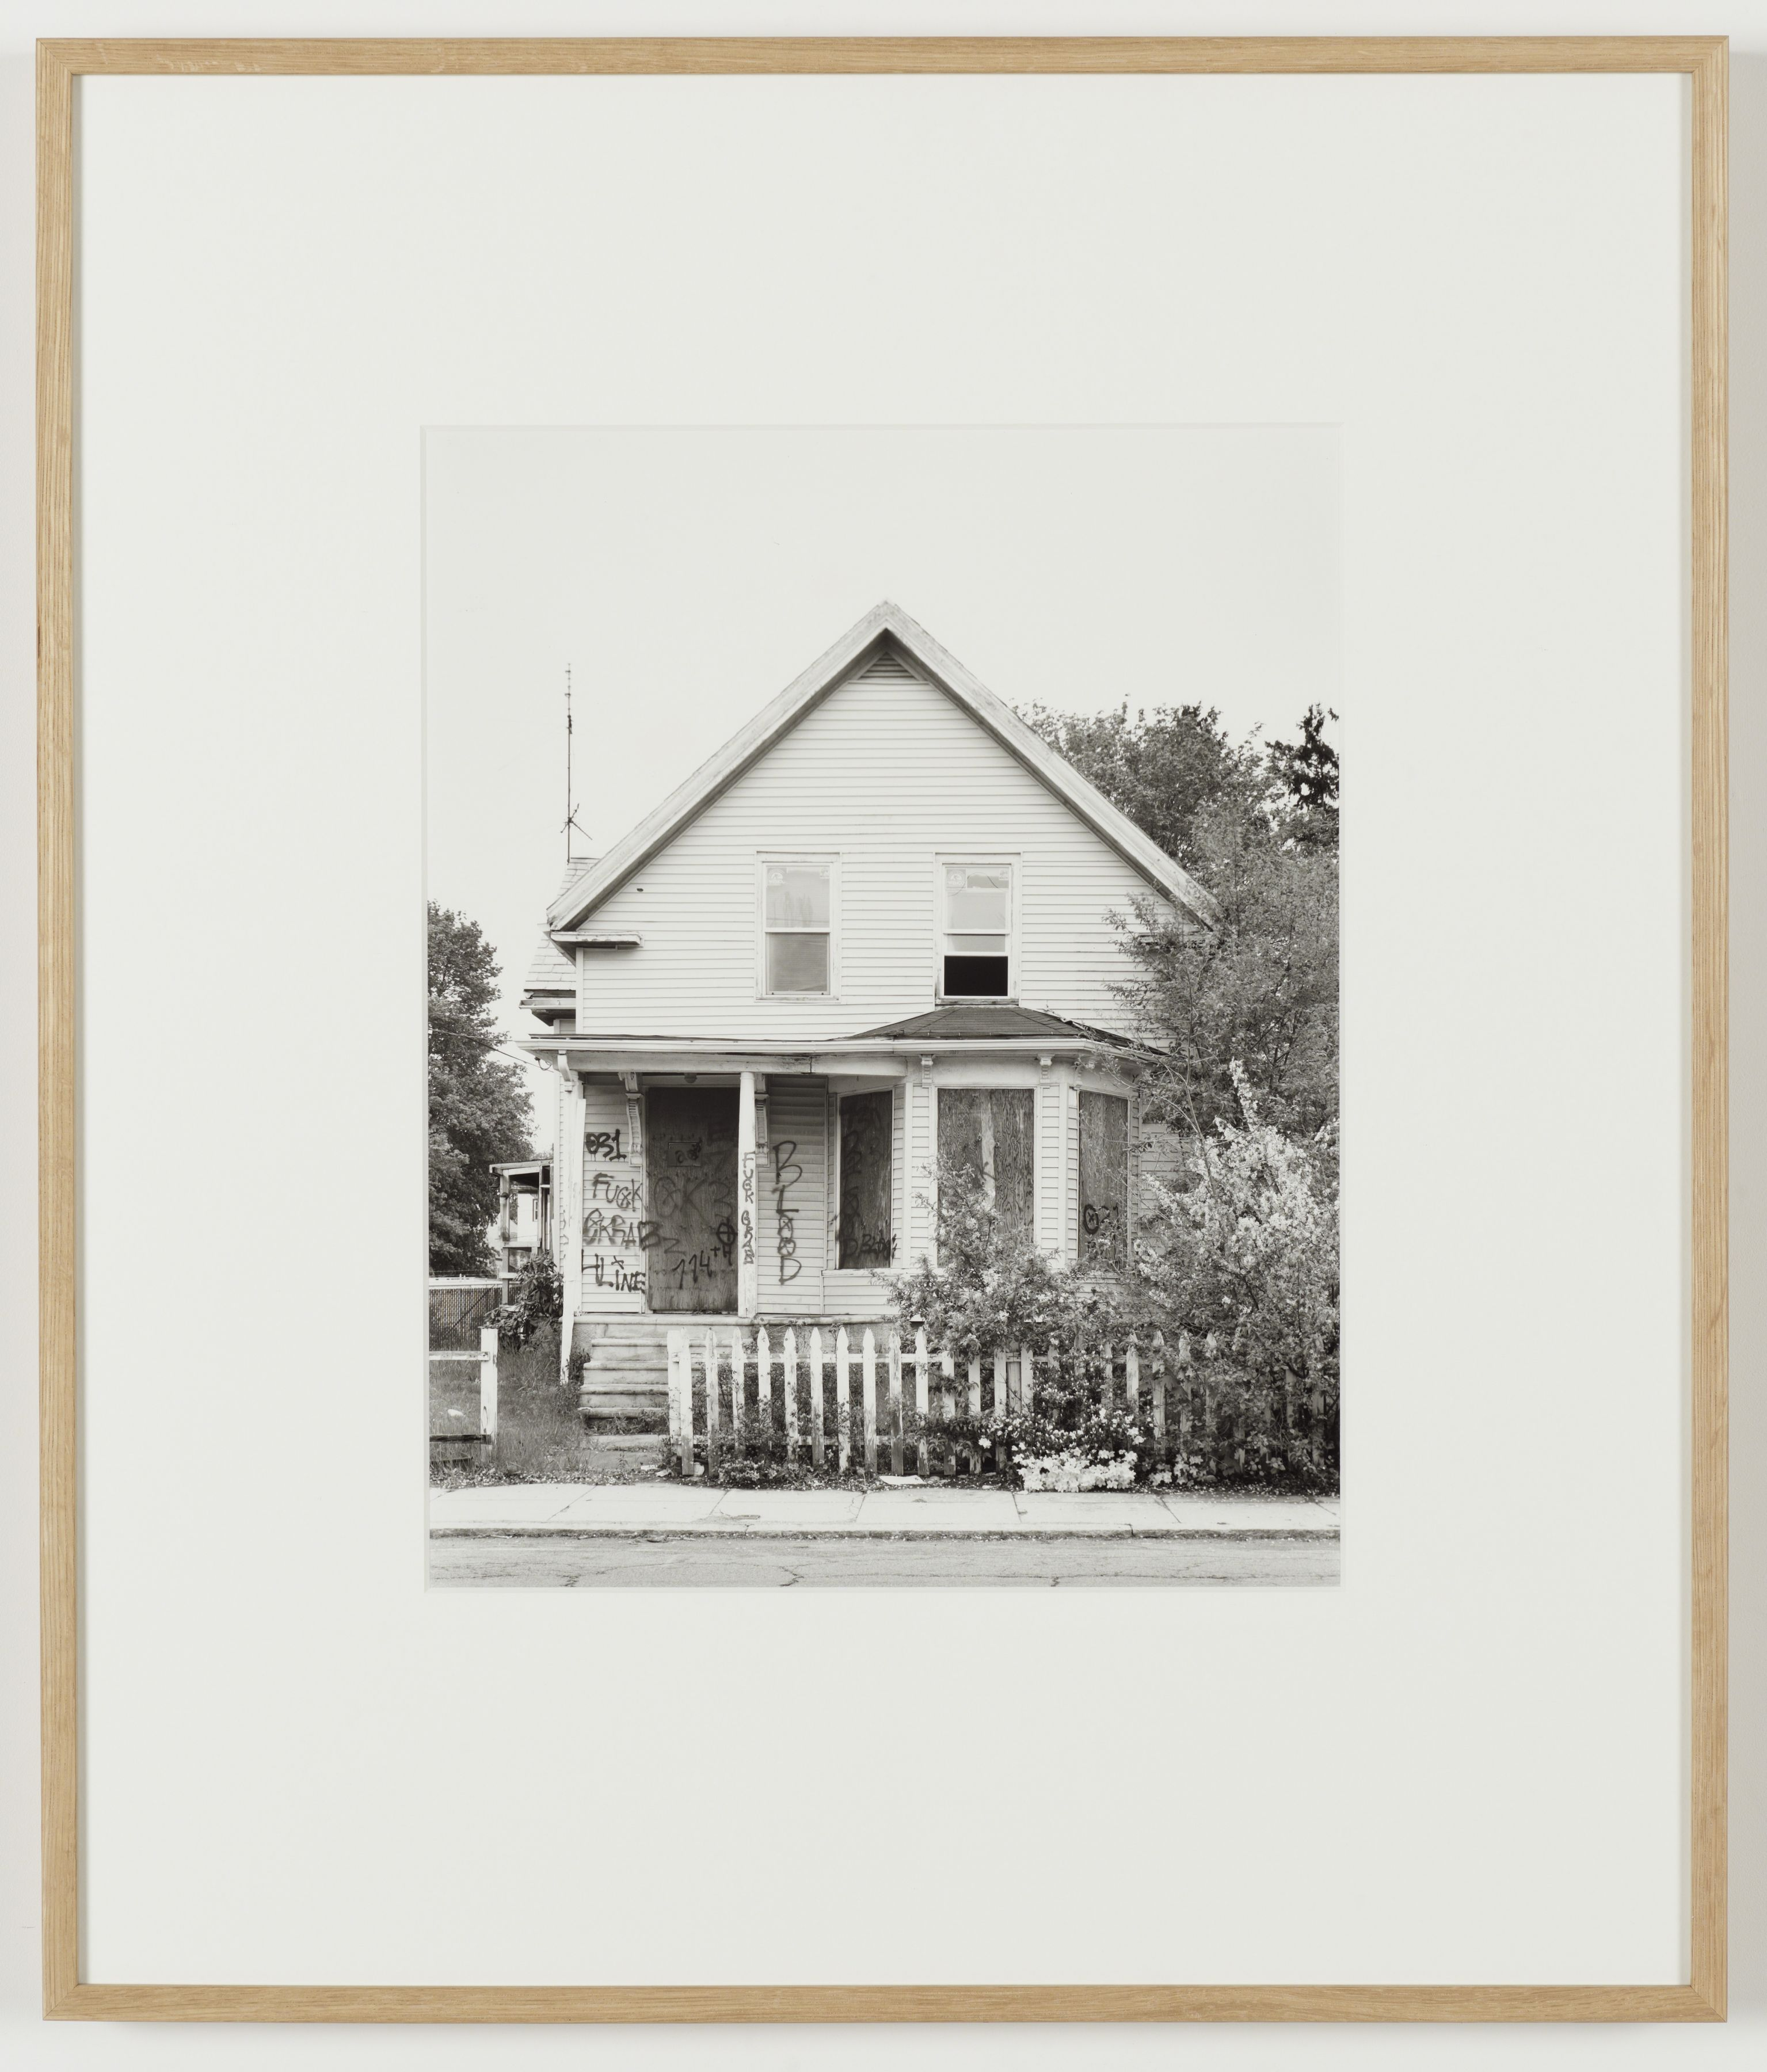 Joachim Koester, Some Boarded Up Houses, Boston #3, 2009-2013, Silver gelatin print, 27 x  22 5/8 inches (68.6 x 57.5 cm)